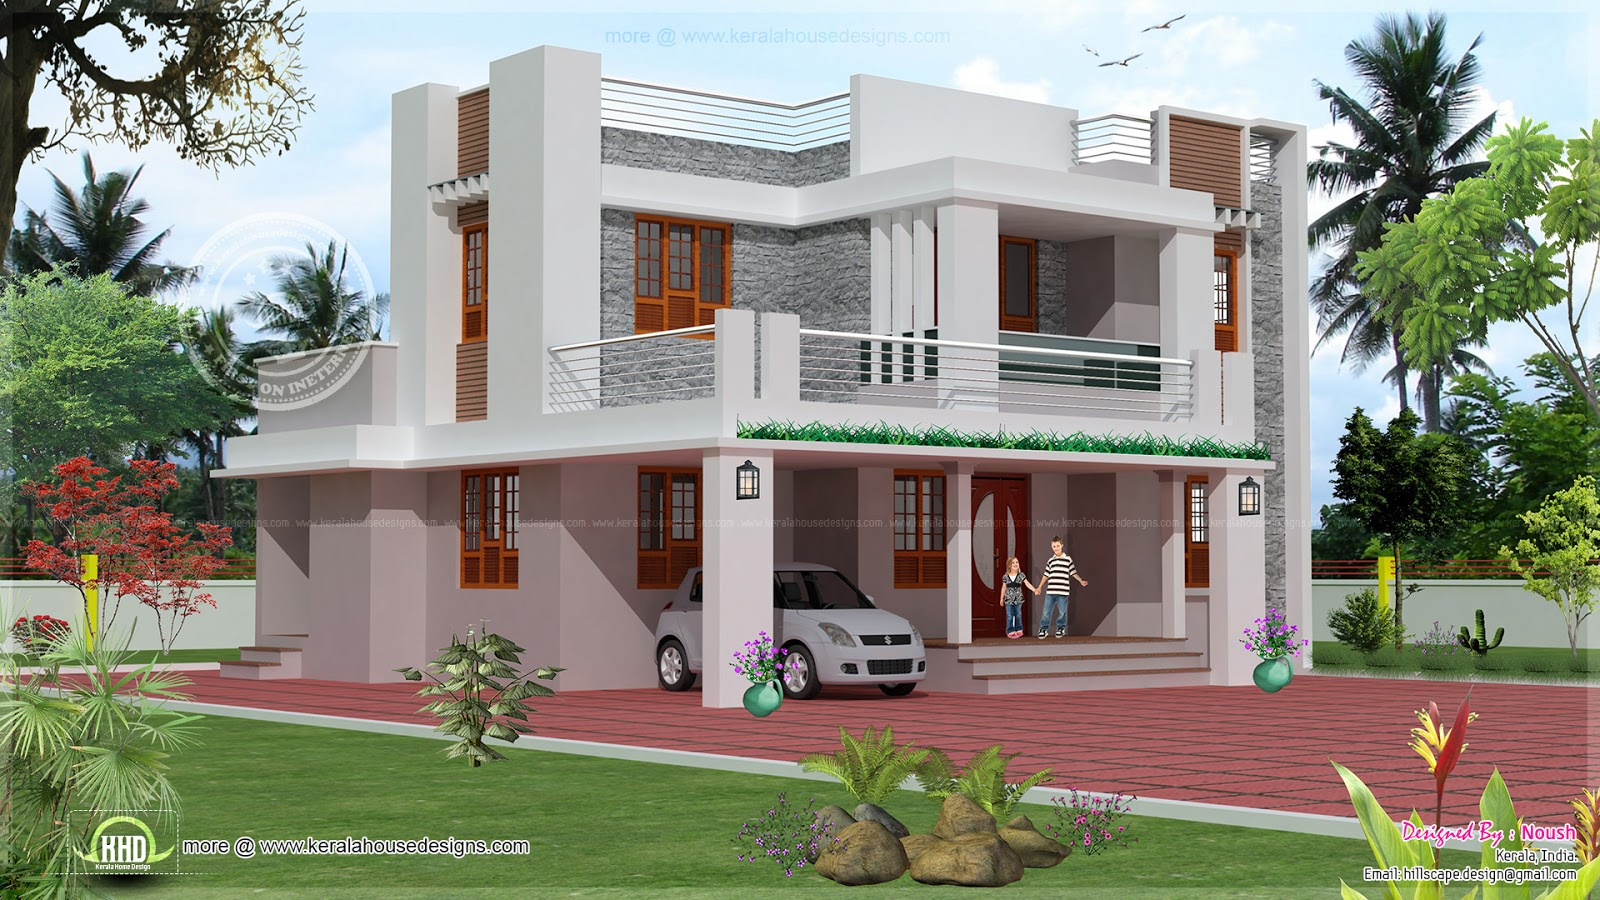 4 bedroom 2 story house exterior design house design plans for Home exterior design